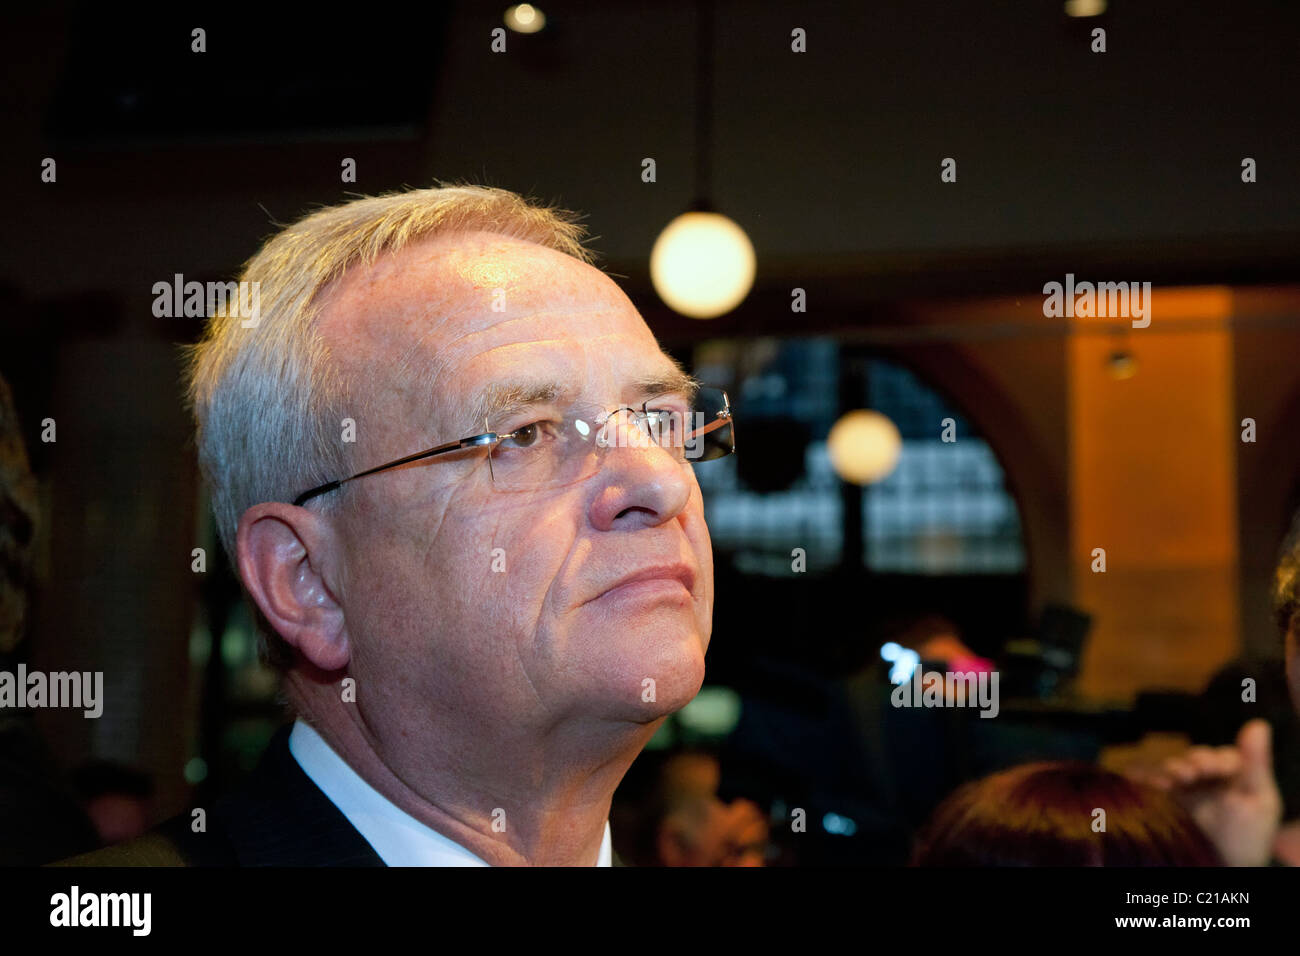 Detroit, Michigan - VW CEO Martin Winterkorn at a press reception during the North American International Auto Show. - Stock Image